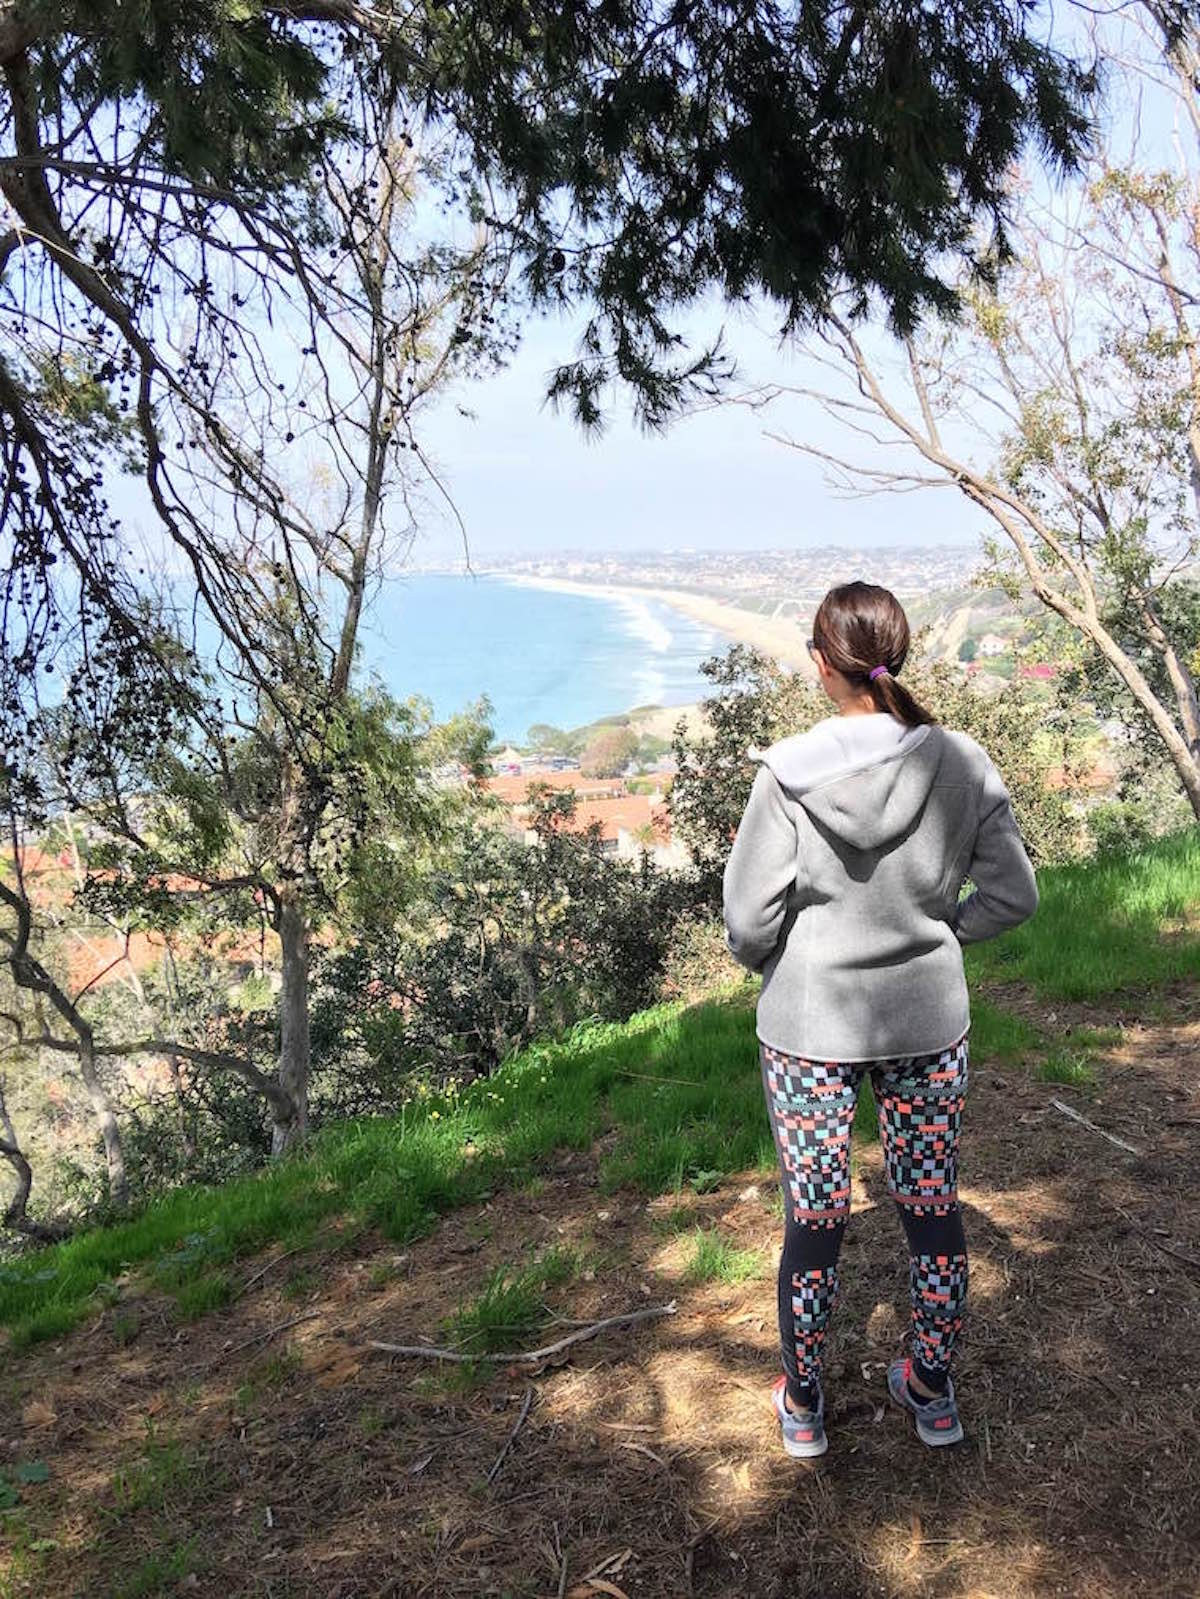 This is a photo of me standing on the edge of a hiking trail in Palos Verdes.